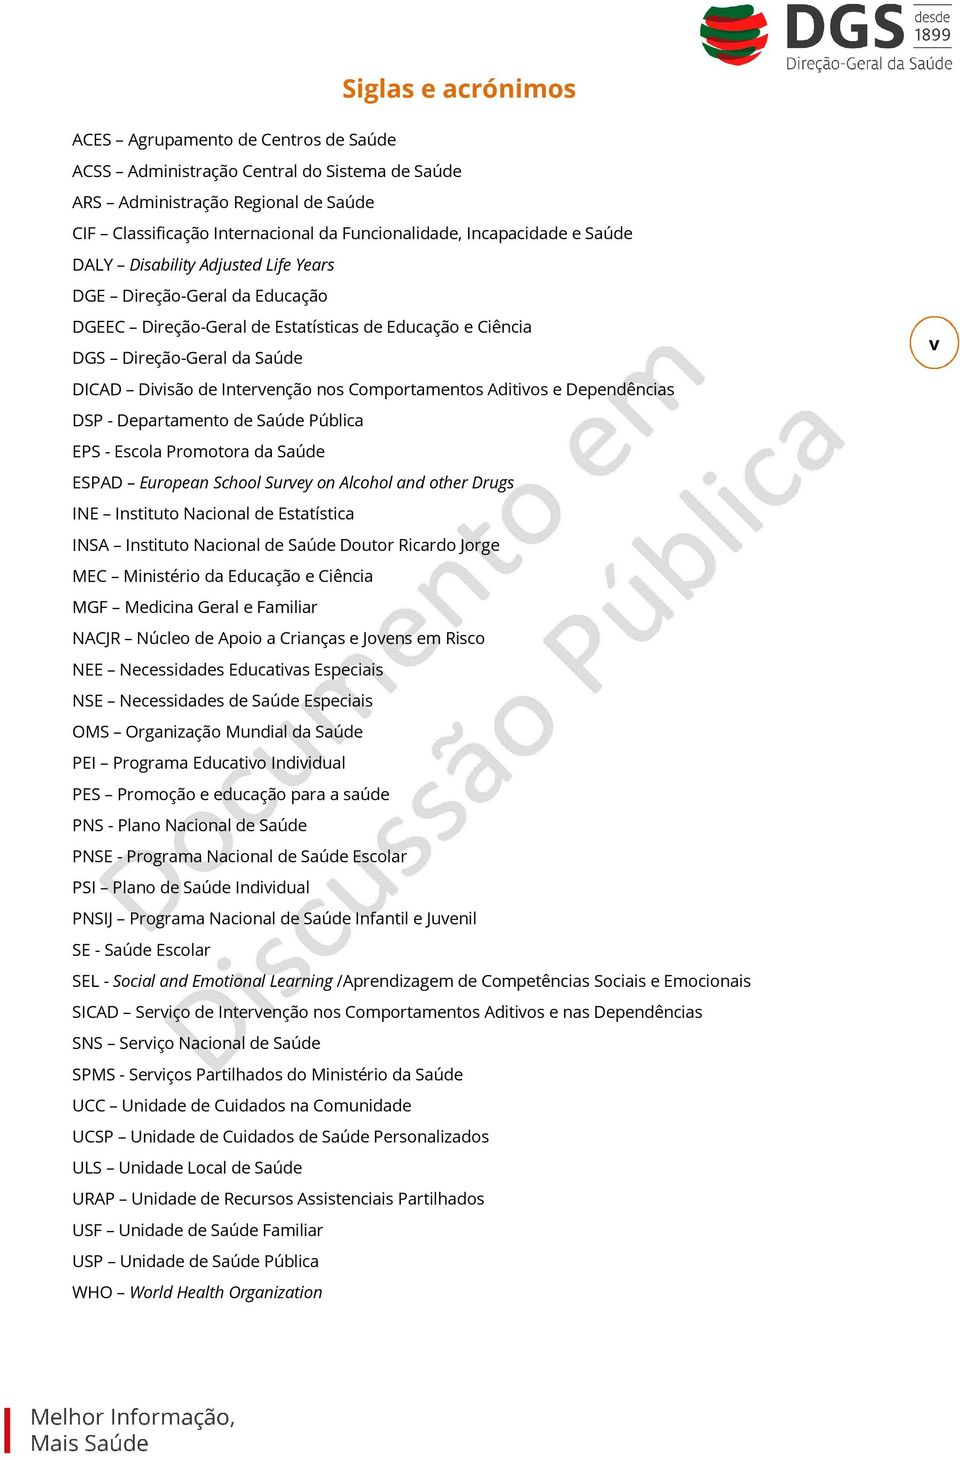 Aditivs e Dependências DSP - Departament de Saúde Pública EPS - Escla Prmtra da Saúde ESPAD Eurpean Schl Survey n Alchl and ther Drugs INE Institut Nacinal de Estatística INSA Institut Nacinal de